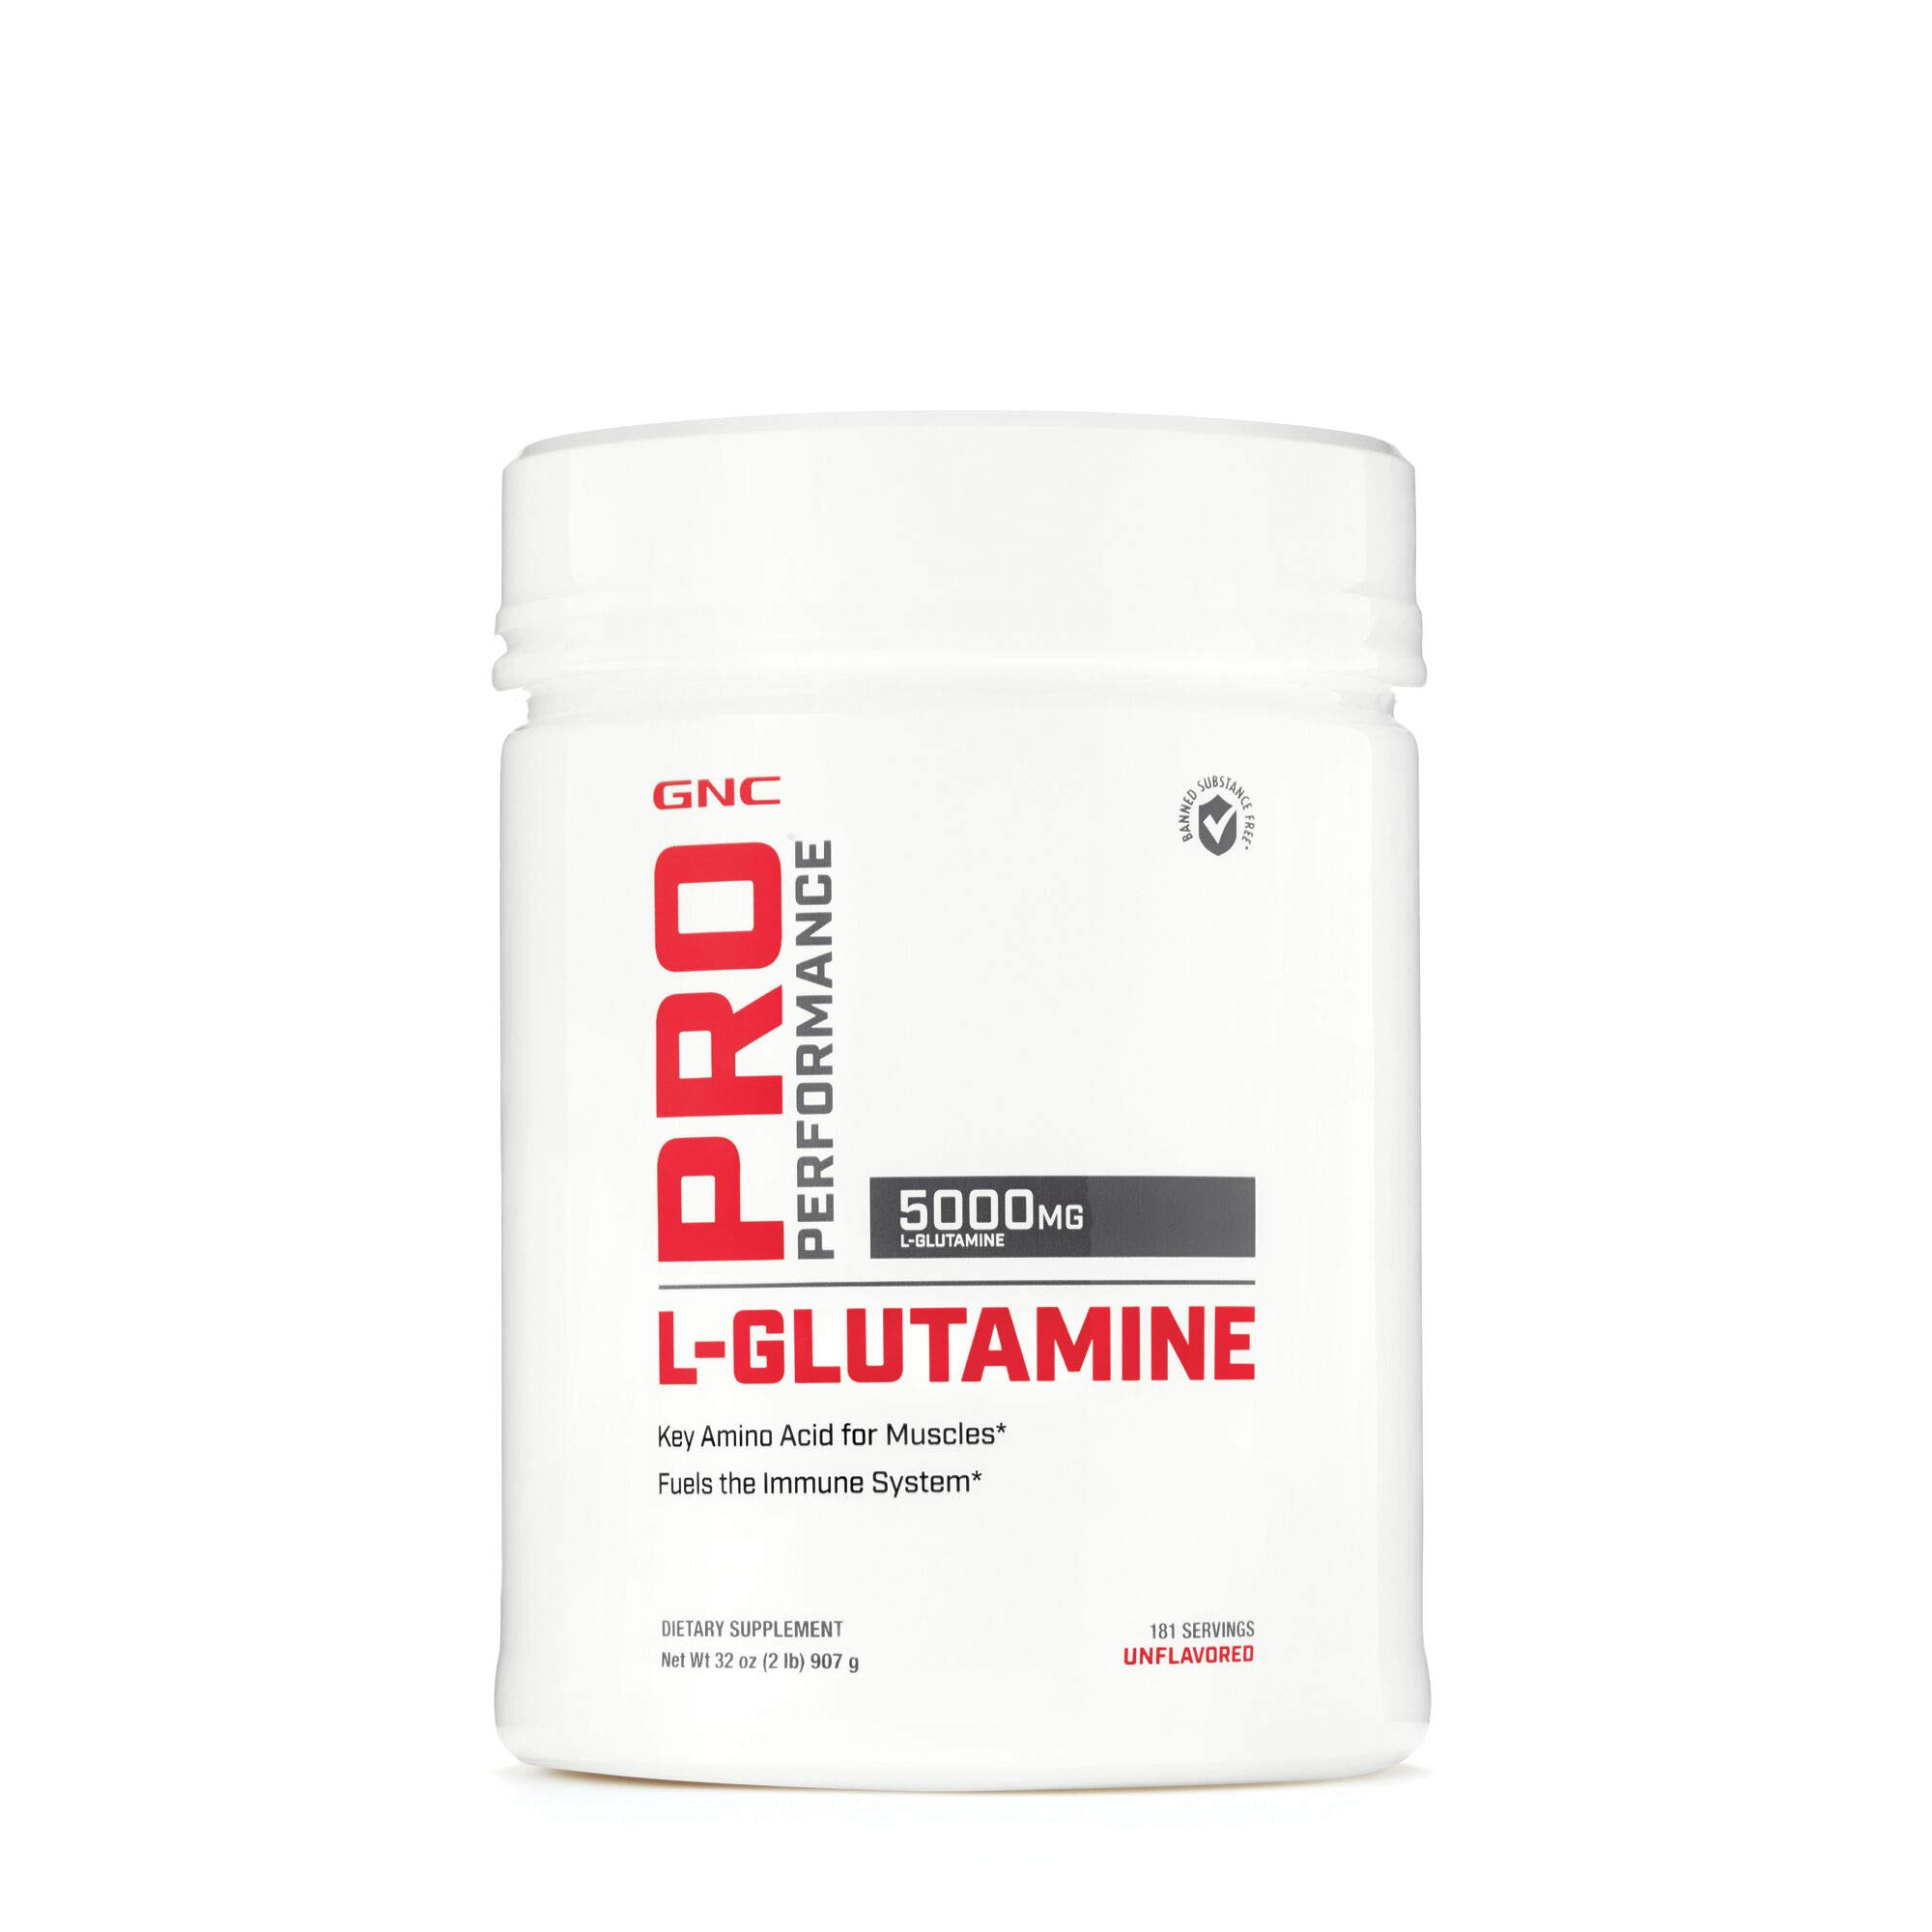 GNC Pro Performance L-Glutamine, Unflavored, 181 Servings, Supports The Immune System by GNC